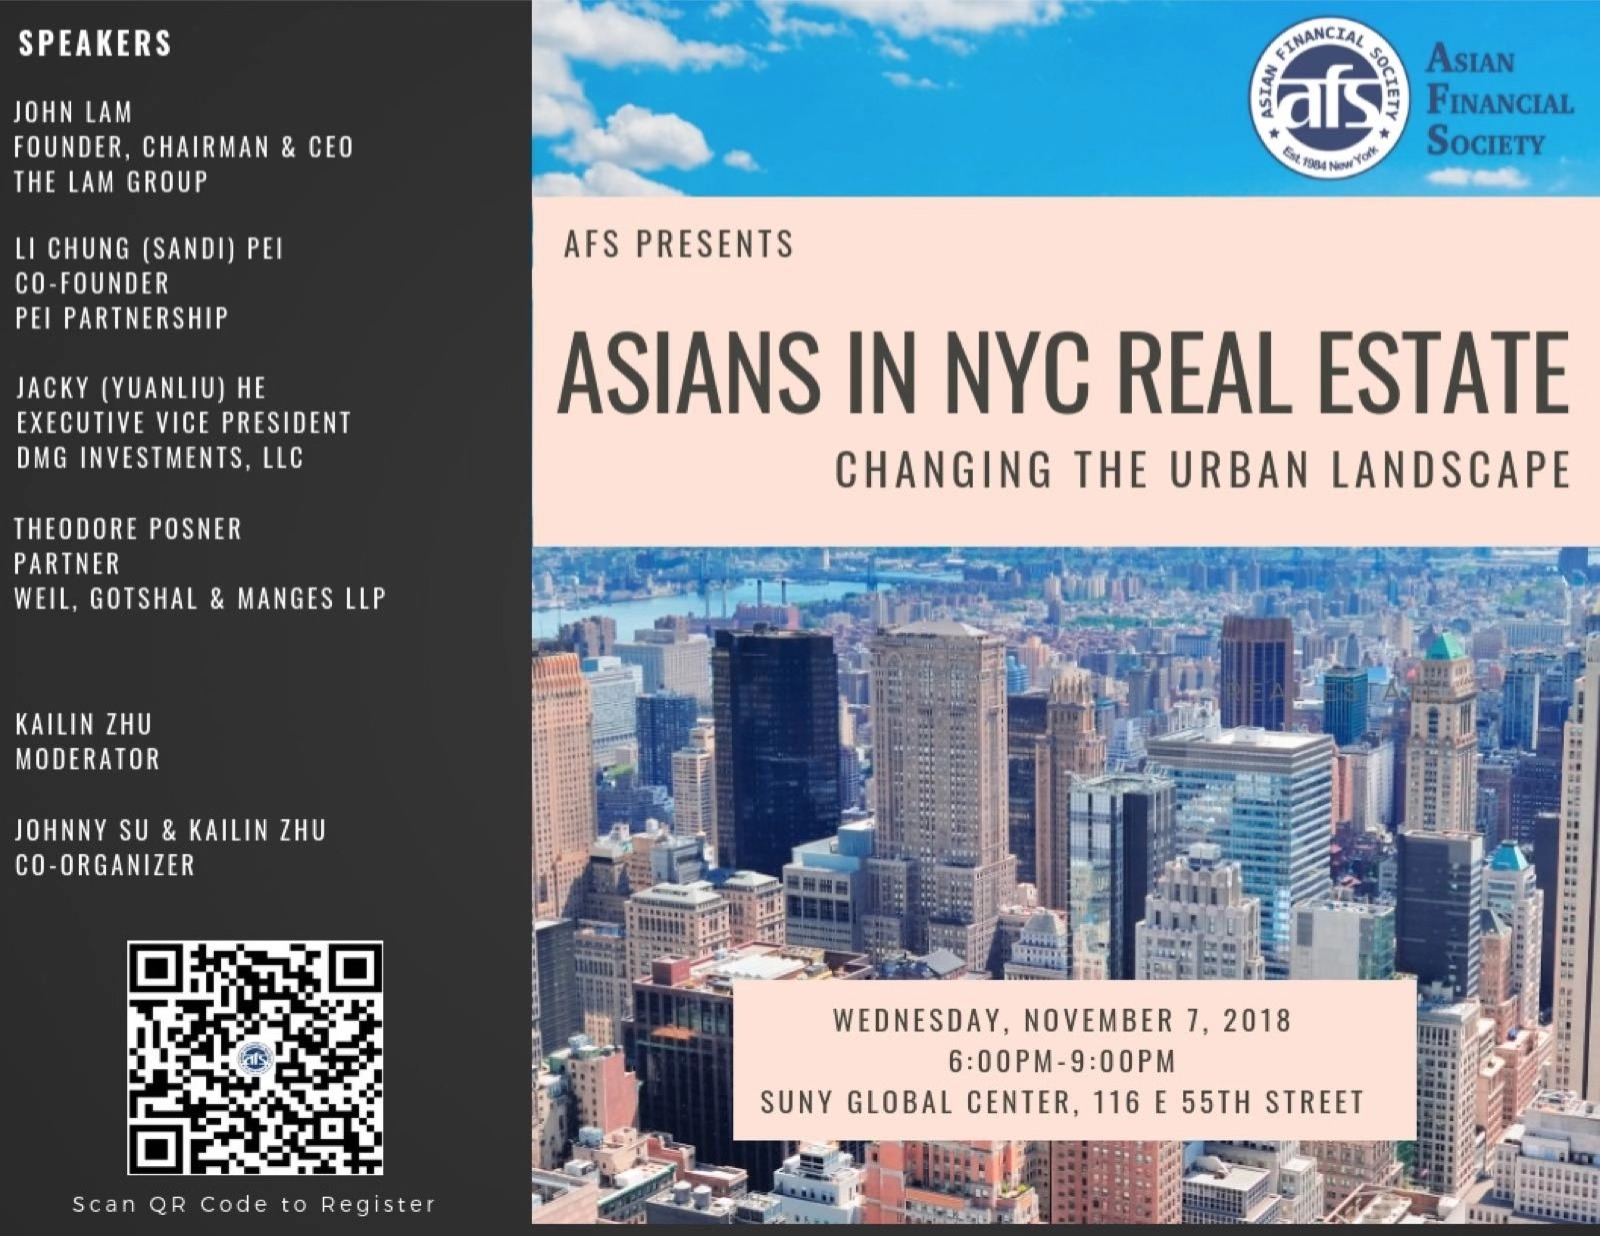 Asians in NY Real Estate: Changing the Urban Landscape